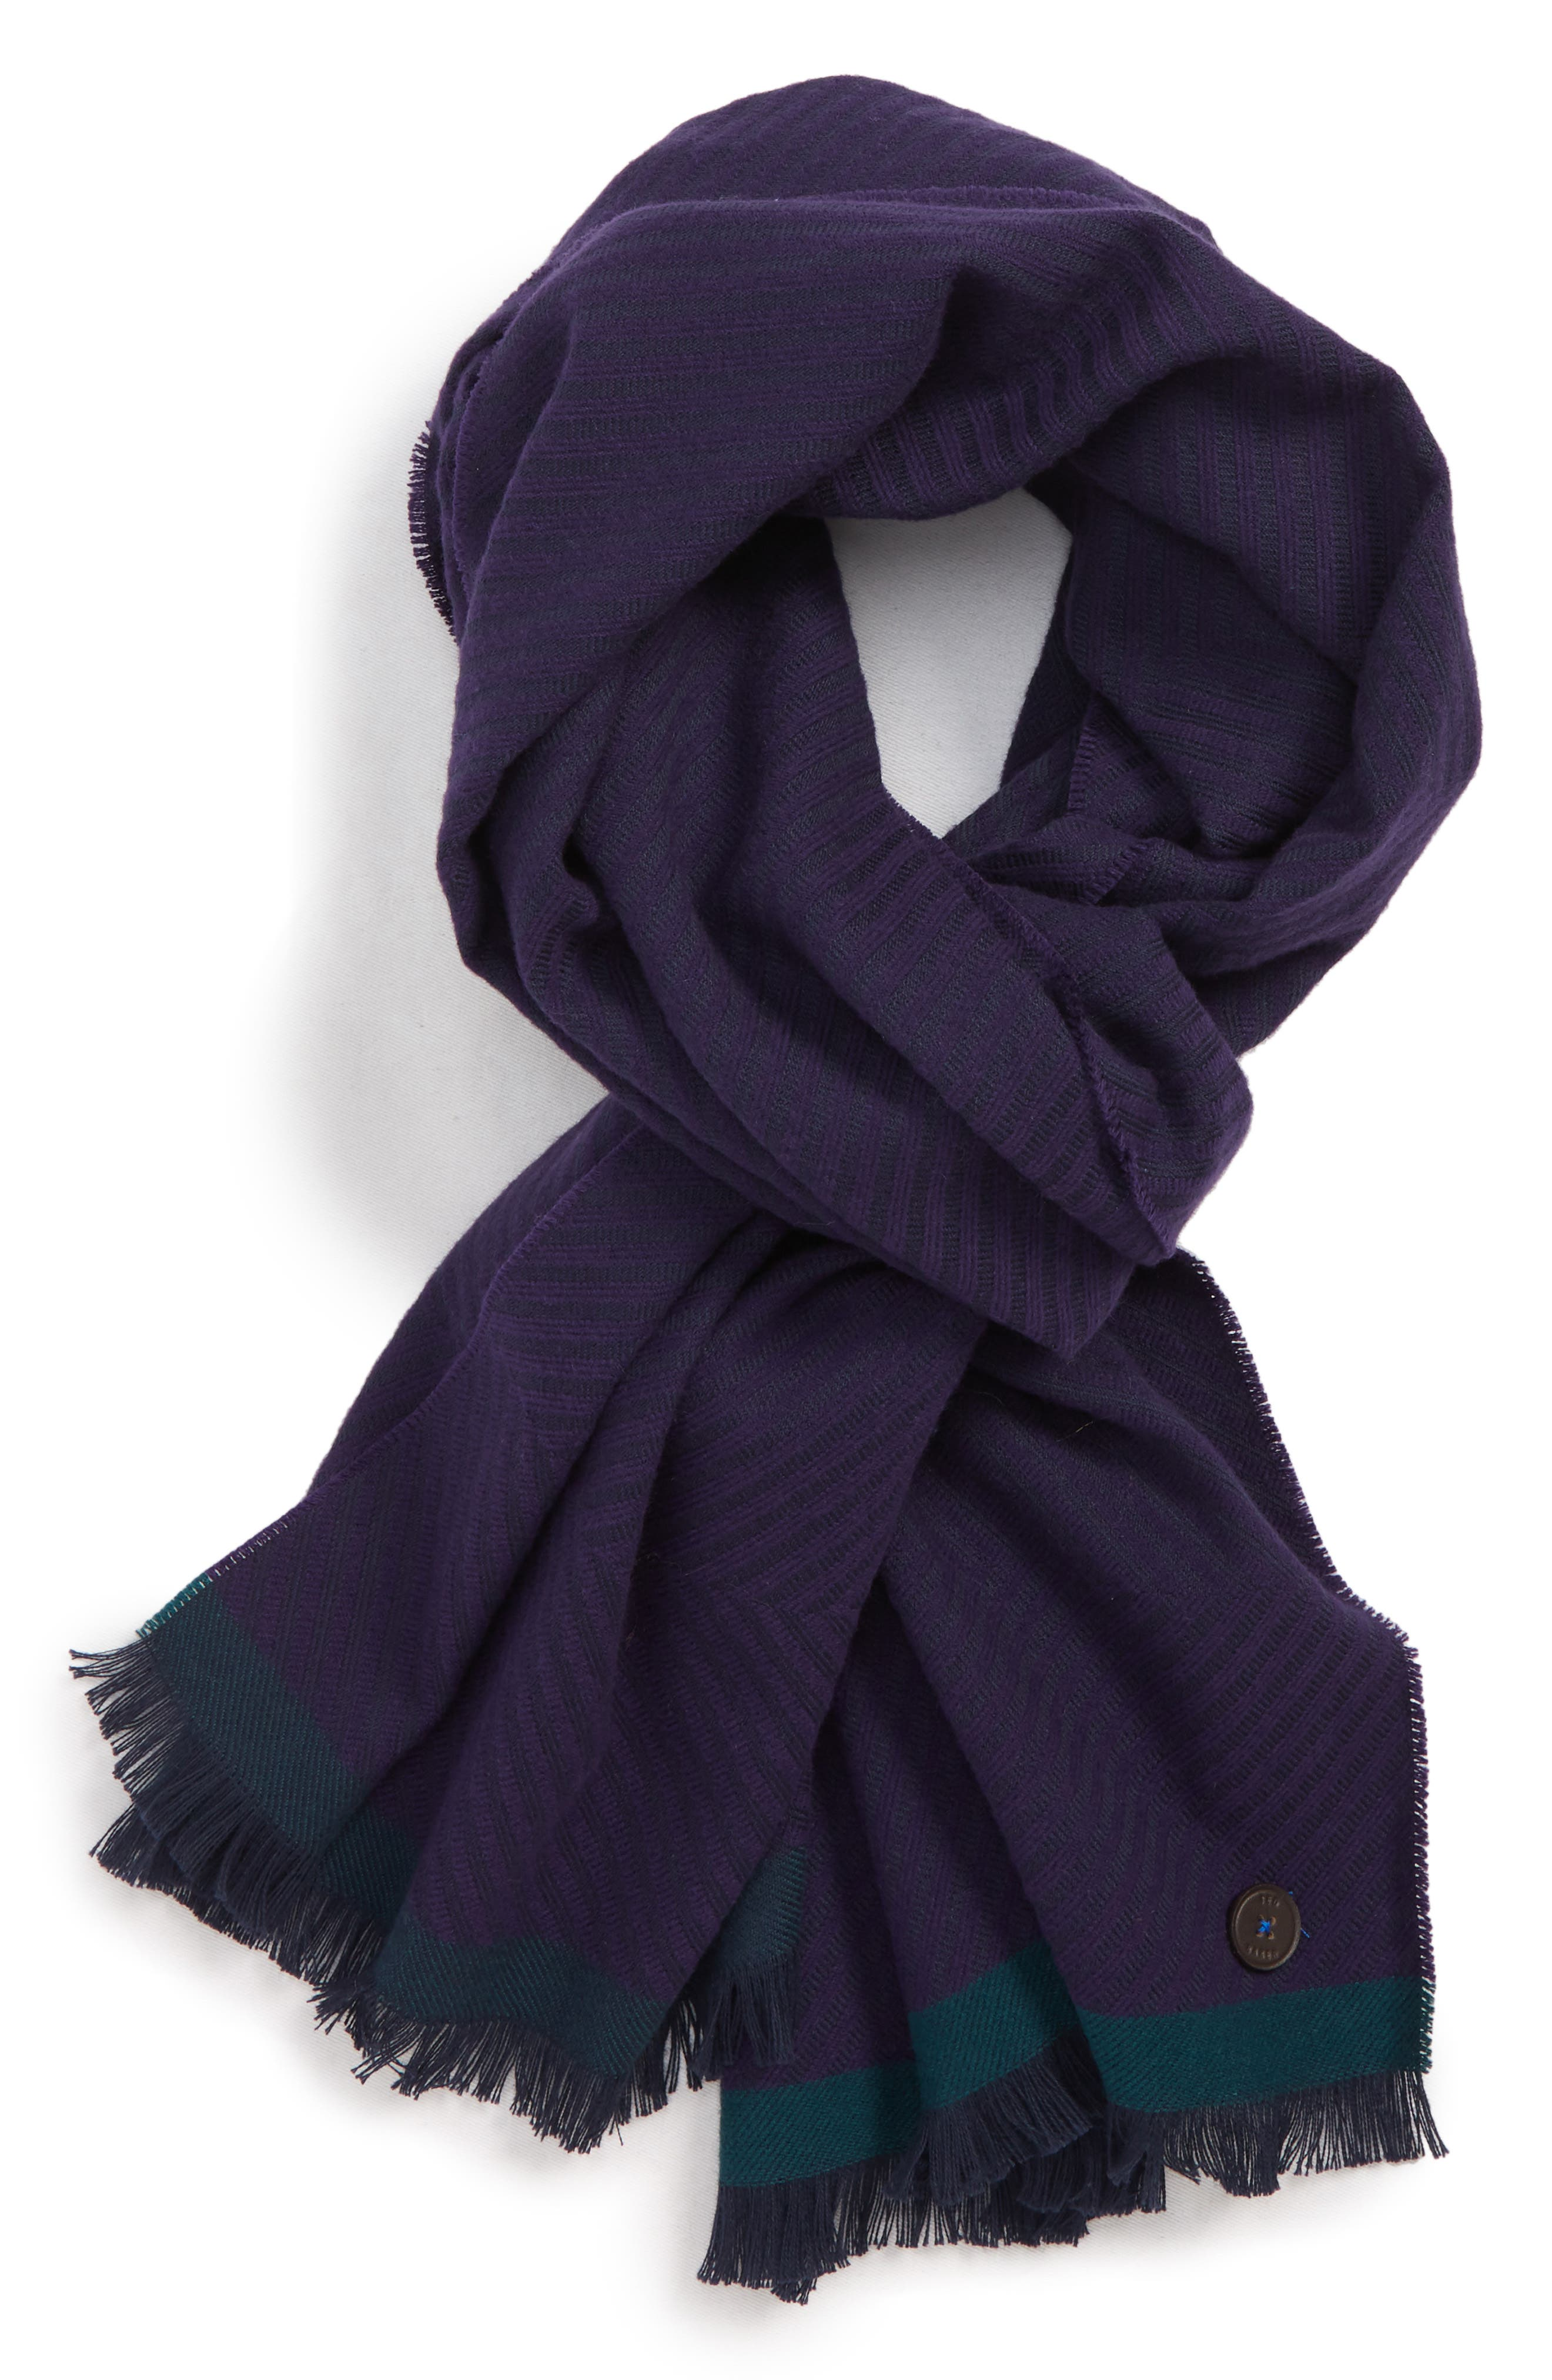 TED BAKER LONDON Cotton Twill Scarf, Main, color, 501